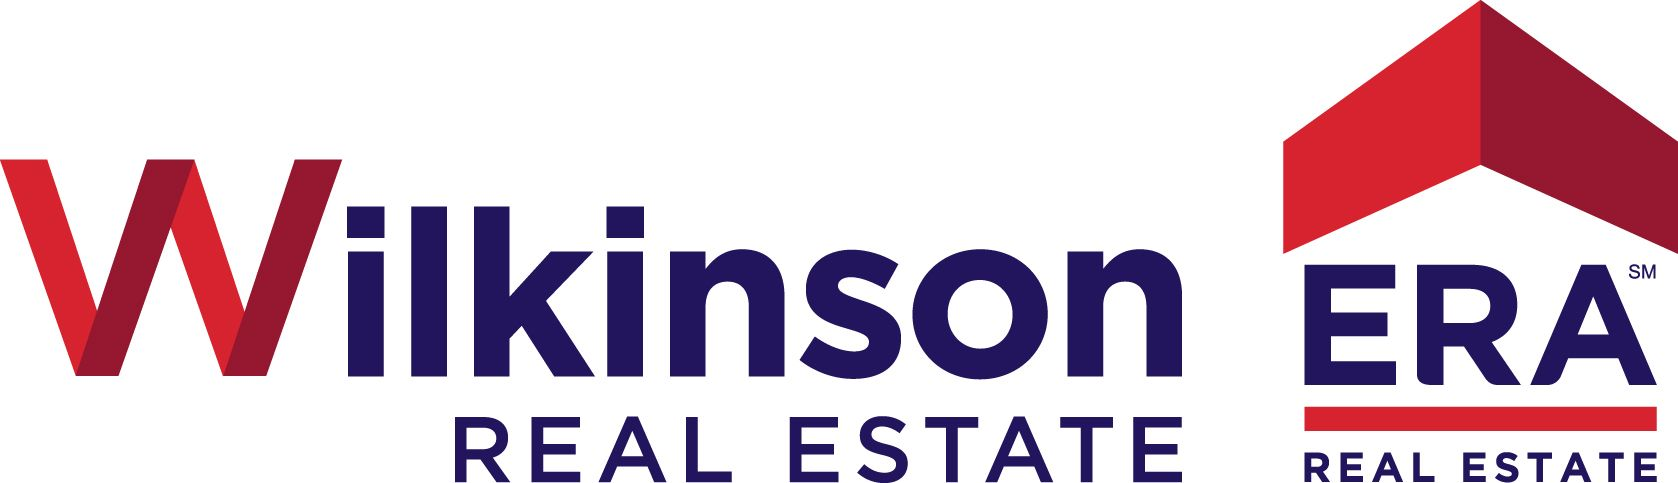 Wilkinson Era Real Estate Announces Eb Moore As Ceo Of The